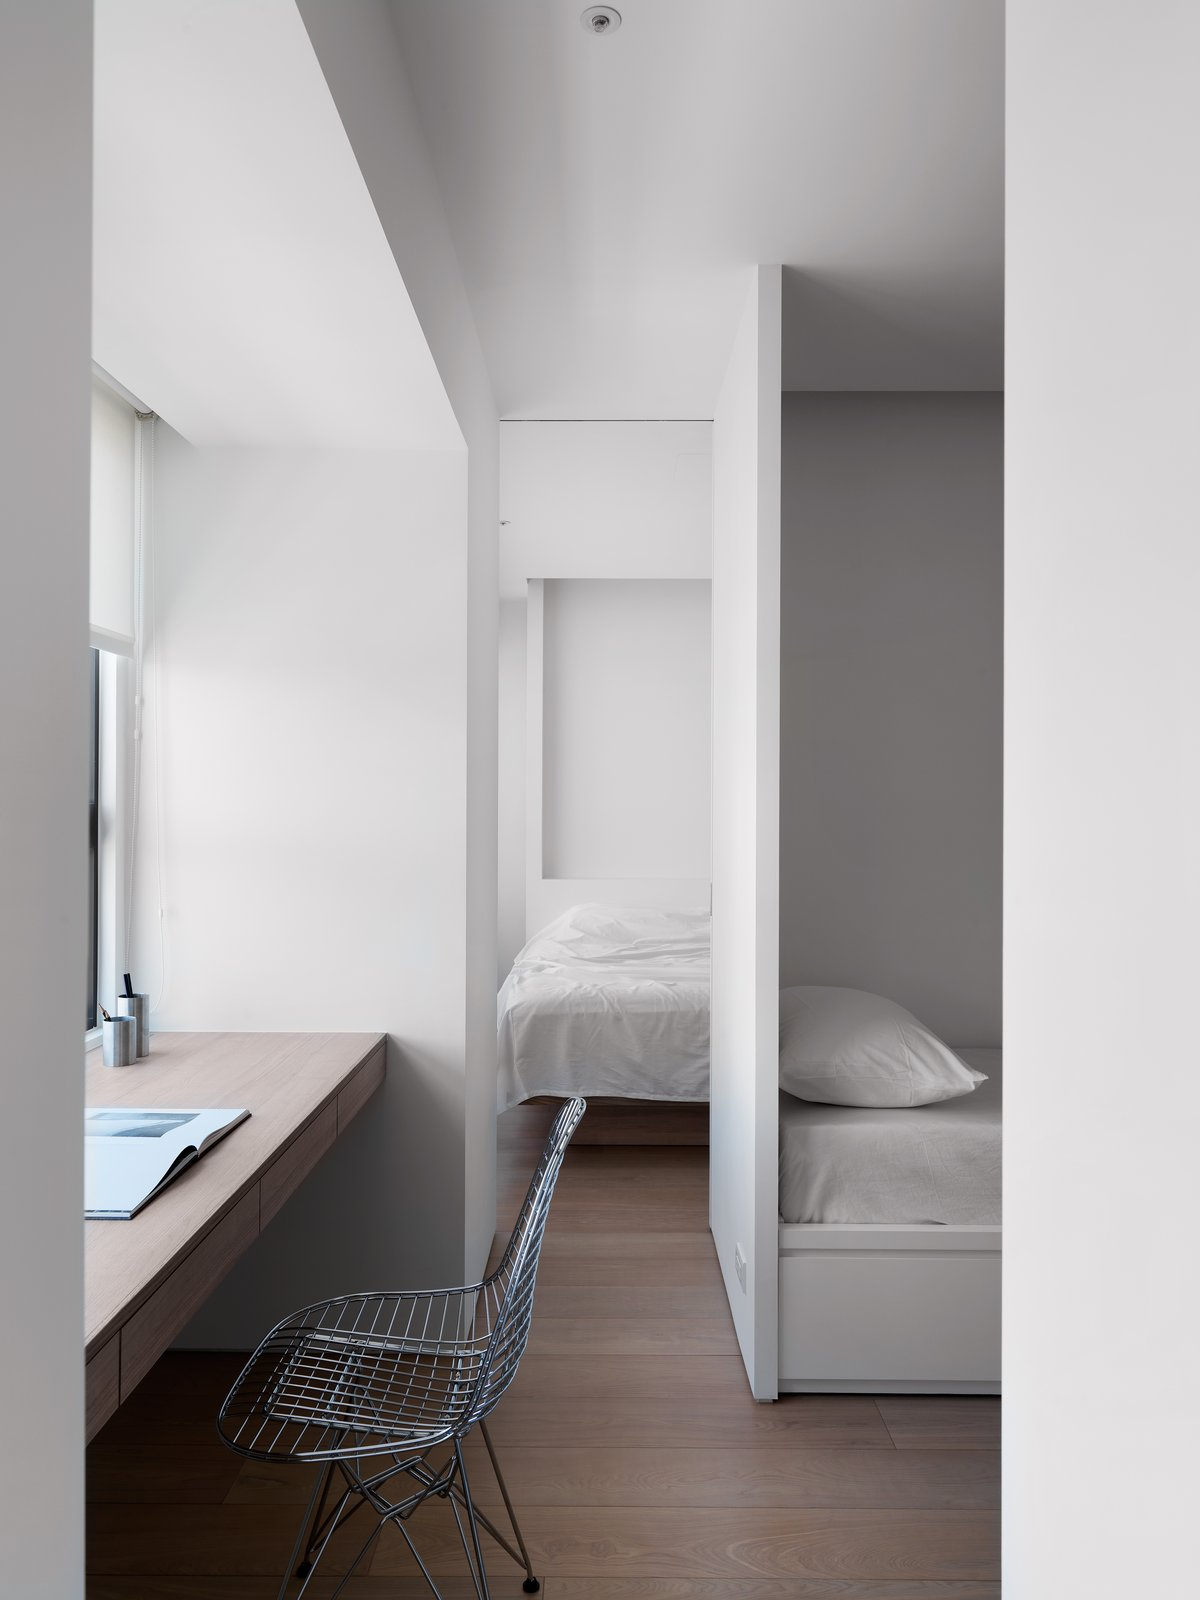 The recess(or alcove)  give a sense of expansion of space. KT Apartment by Marty Chou Architecture